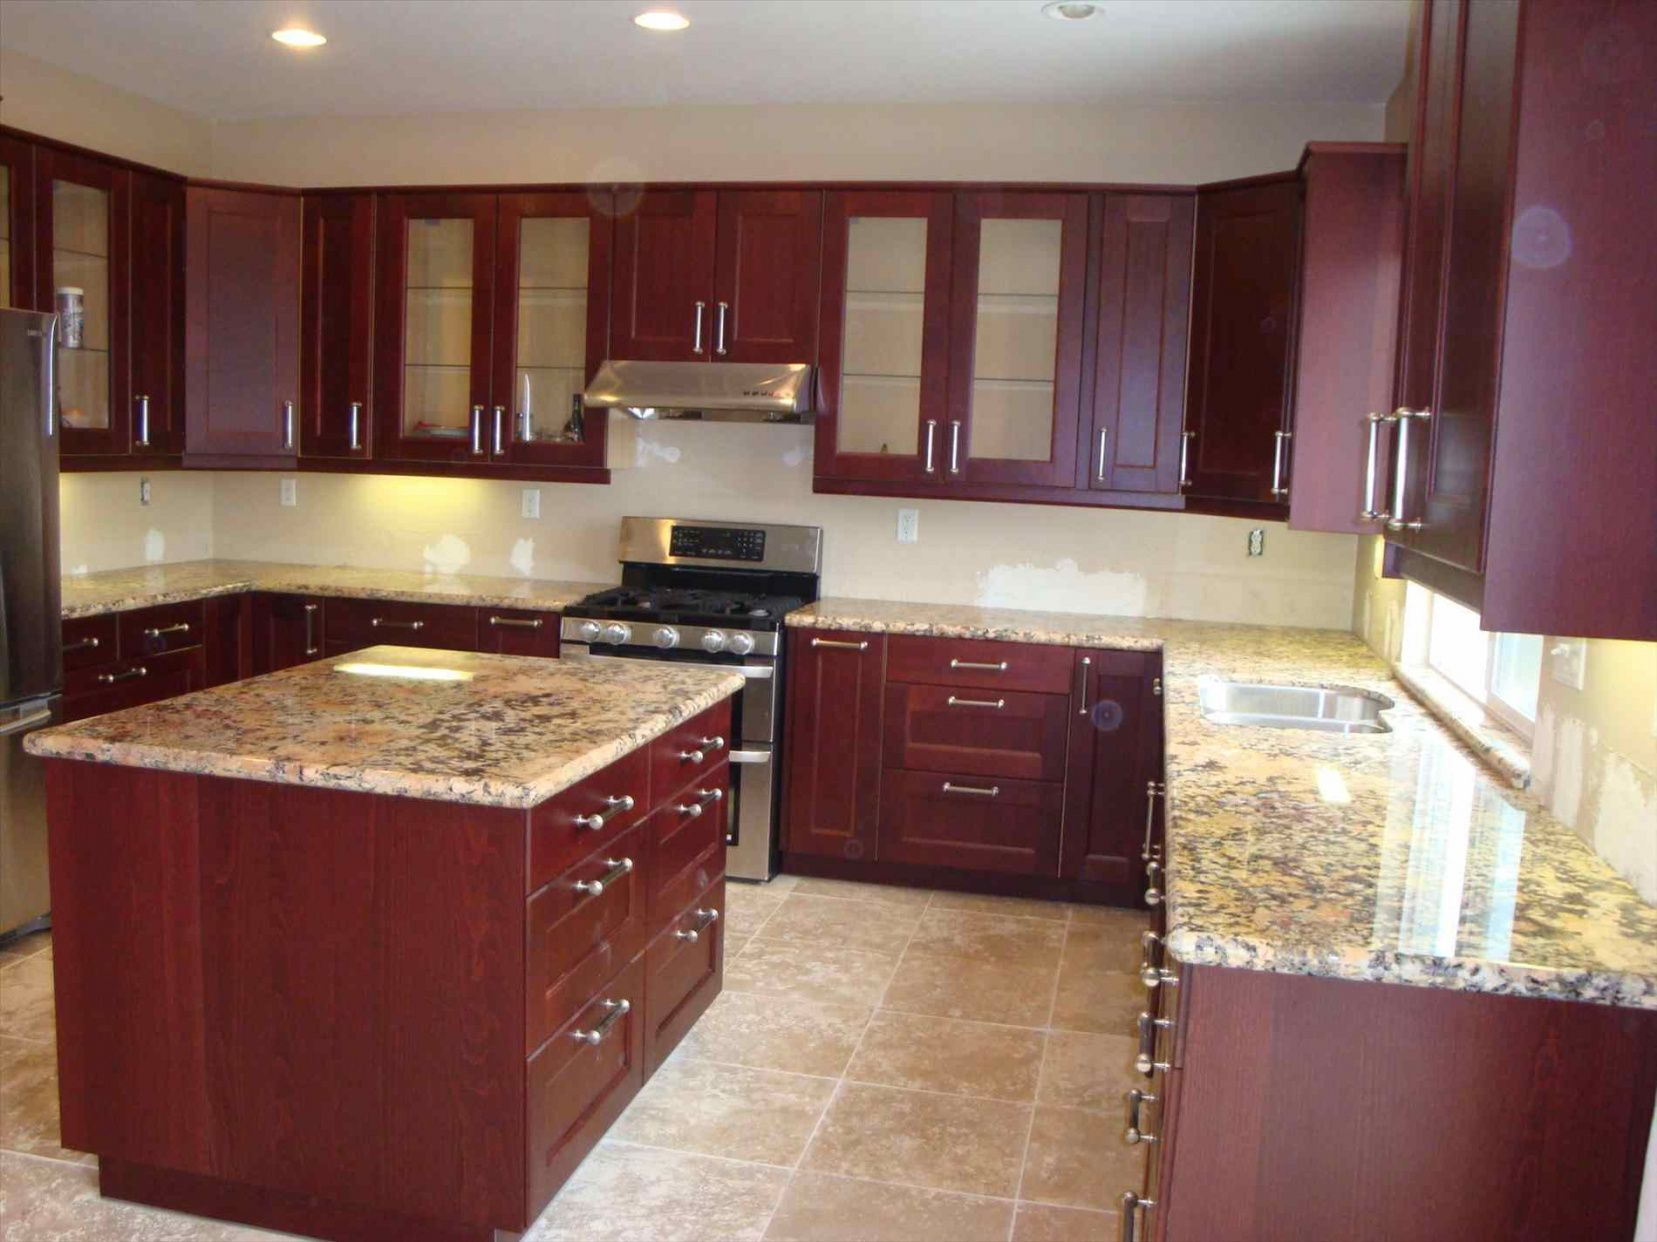 99 Cherry Cabinets With Quartz Countertops Kitchen Counter Top